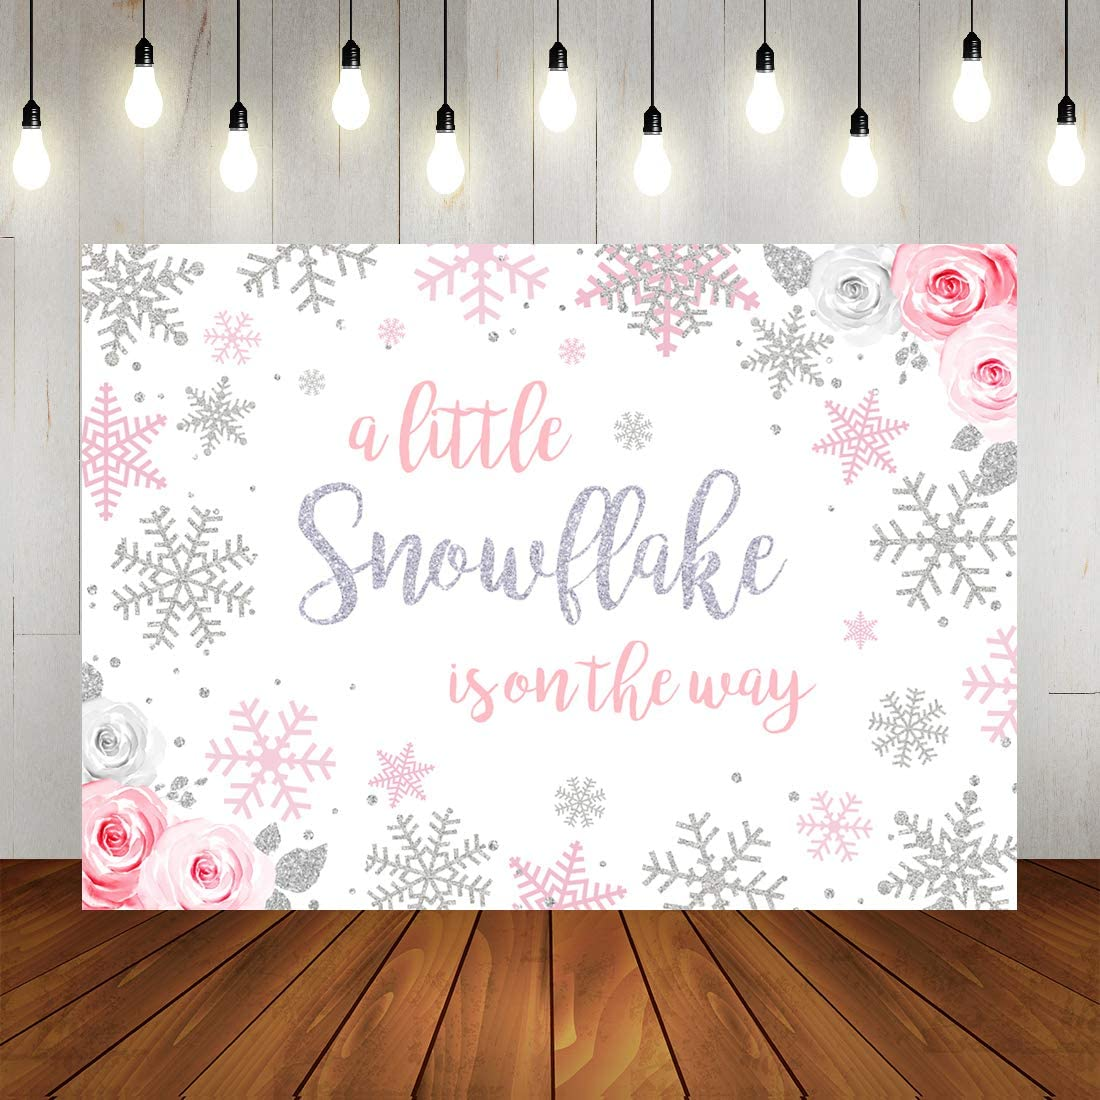 Winter Snowflake Baby Shower Backdrop Winter Wonderland Baby Shower Party Background for Girl Watercolor Floral Baby Shower Decorations Banner Photo Booth Props 7x5ft